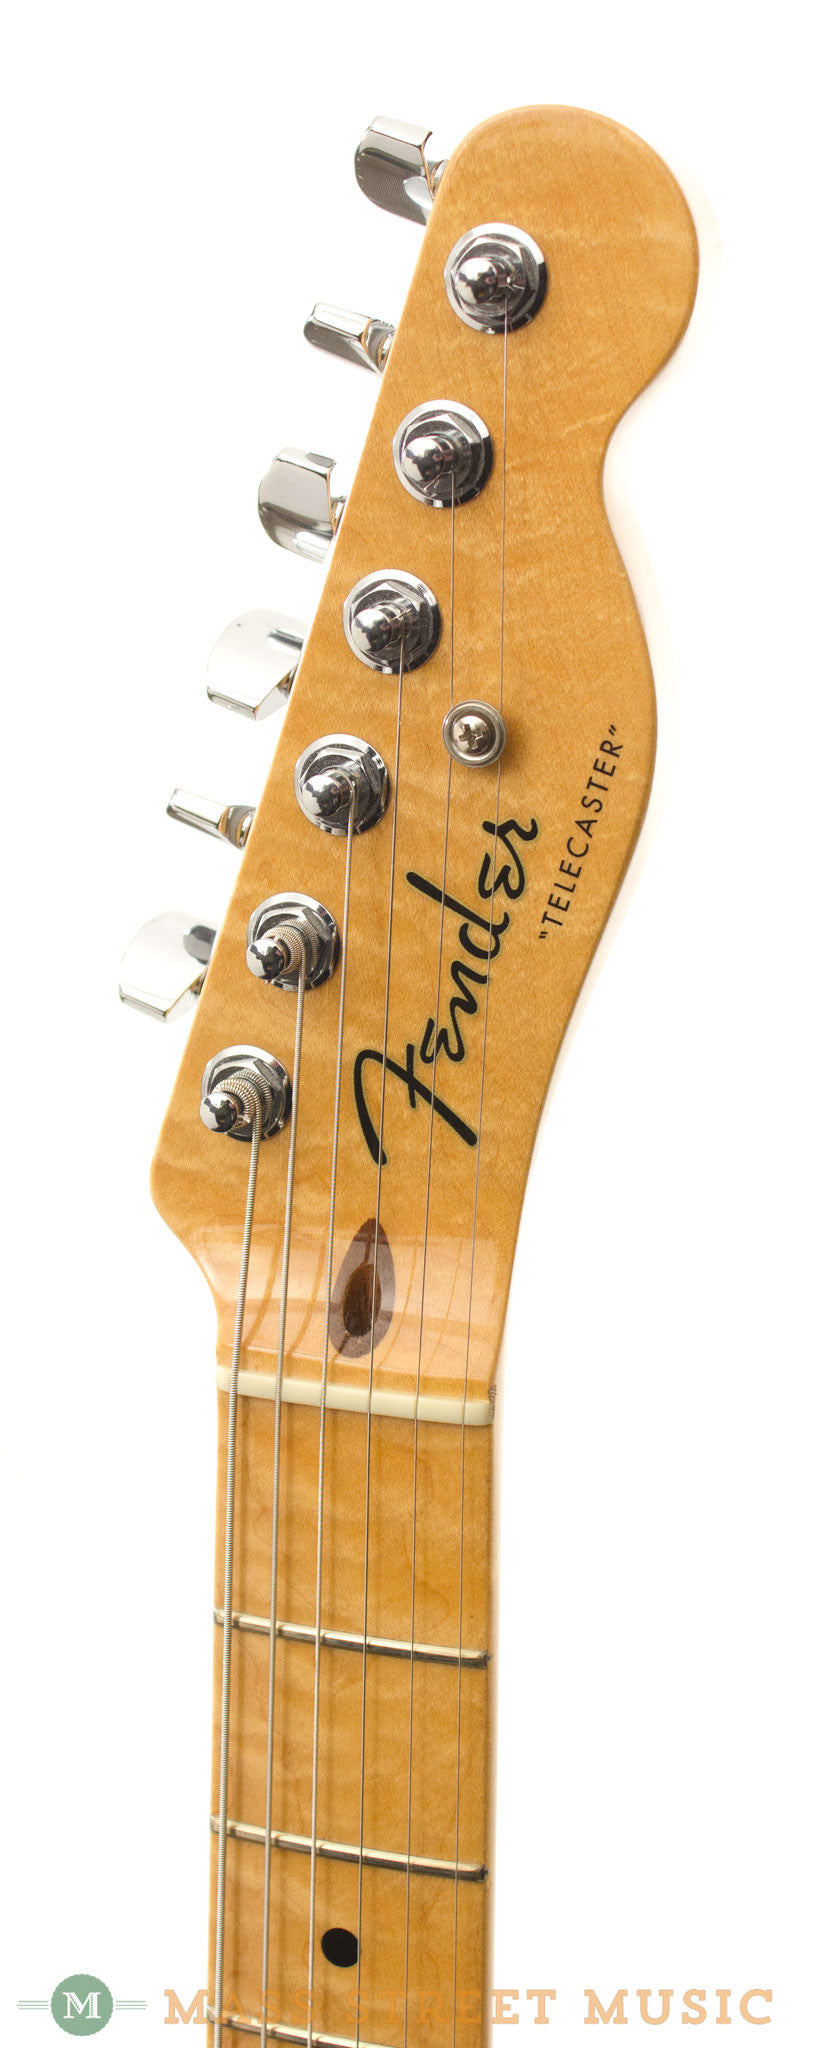 fender custom shop telecaster 2004 used electric guitar with case mass street music store. Black Bedroom Furniture Sets. Home Design Ideas